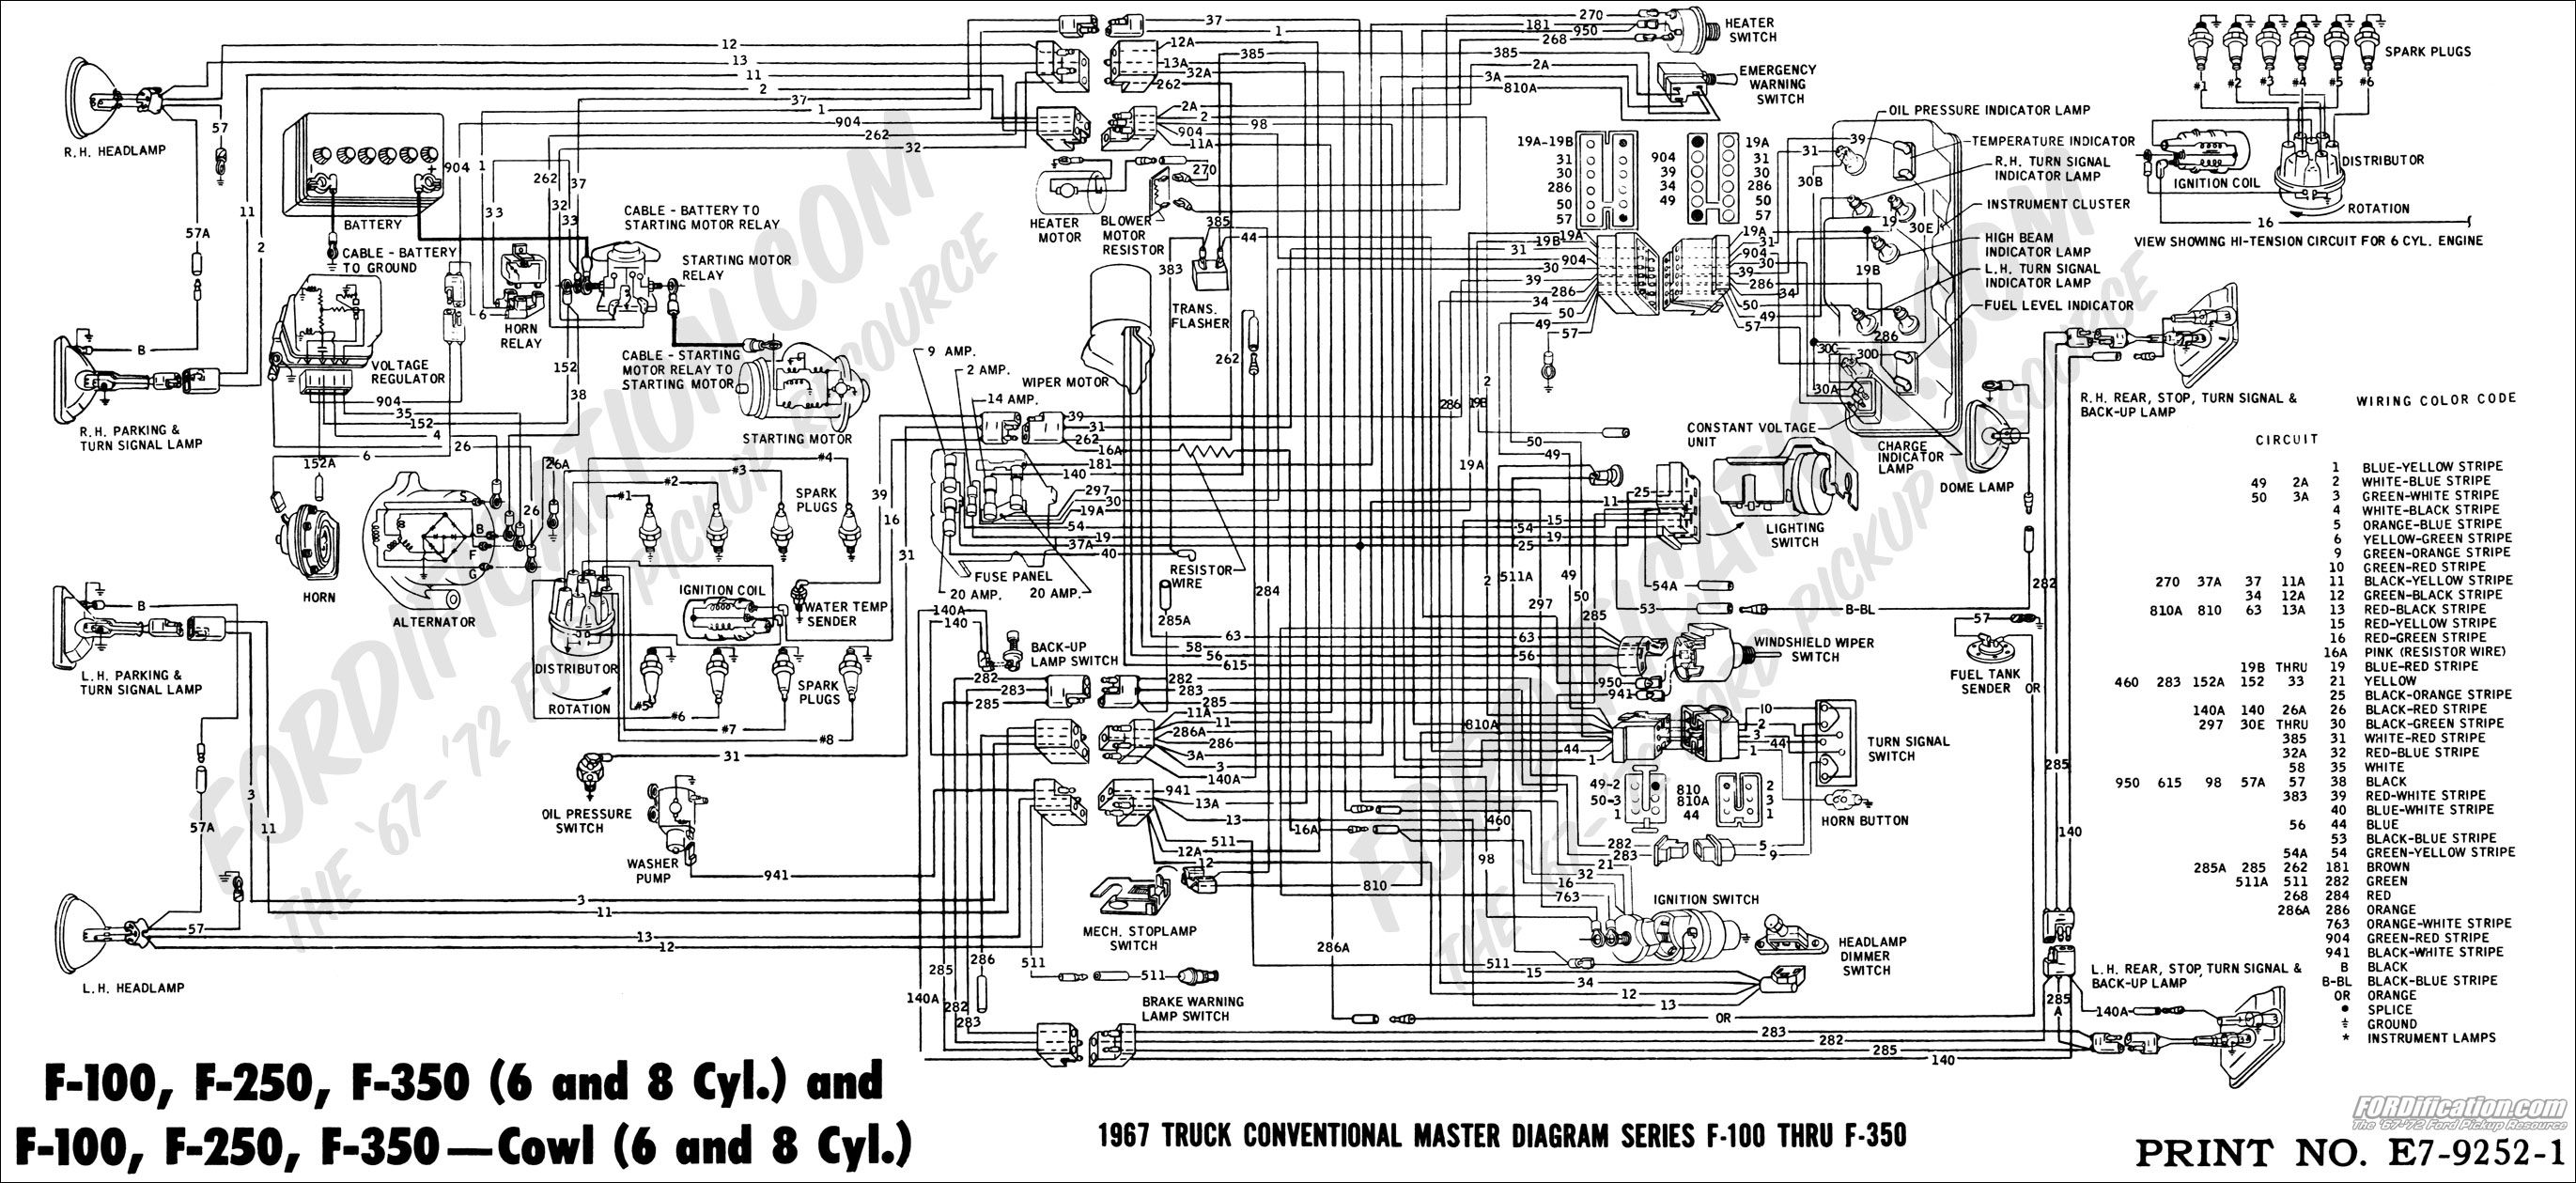 8e608320d8e6c71ff5bbdb2efdd7ada1 ford truck technical drawings and schematics section h wiring 1965 ford f100 wiring diagram at crackthecode.co